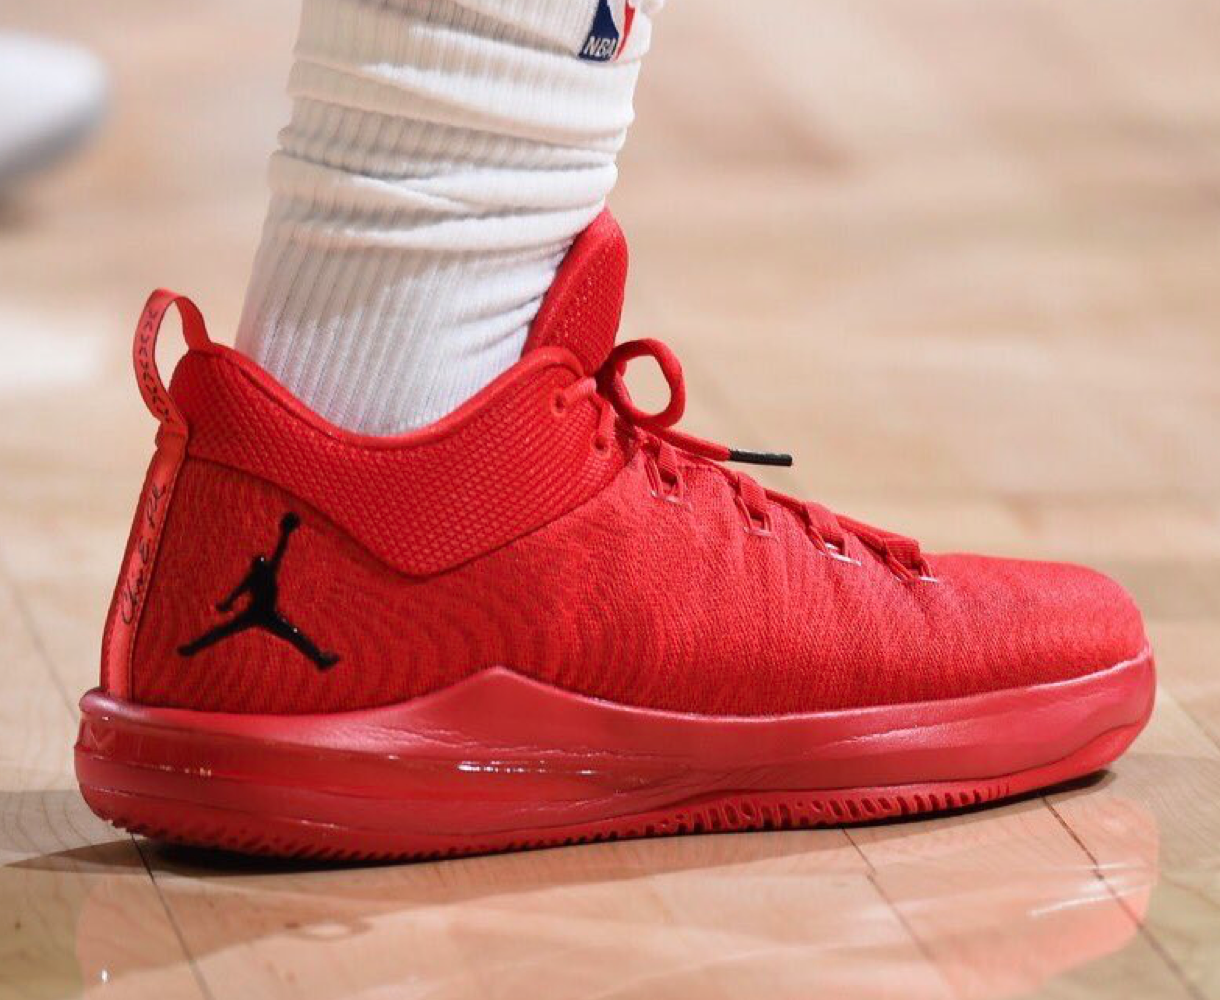 new style 114b5 bd3a2 Chris Paul laces up his CP3 X Houston Rockets PE